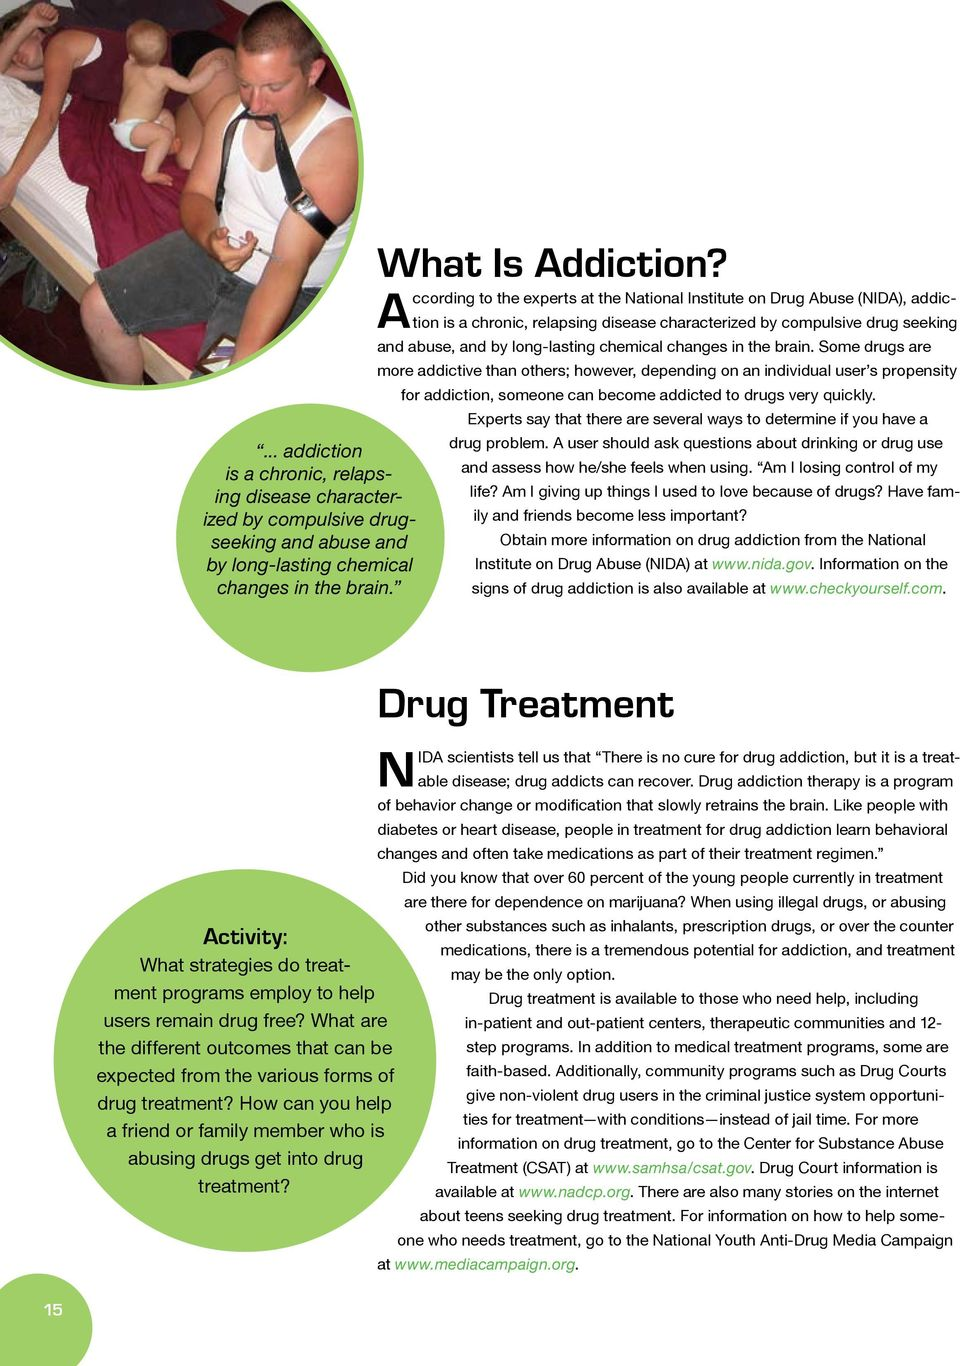 changes in the brain. Some drugs are more addictive than others; however, depending on an individual user s propensity for addiction, someone can become addicted to drugs very quickly.